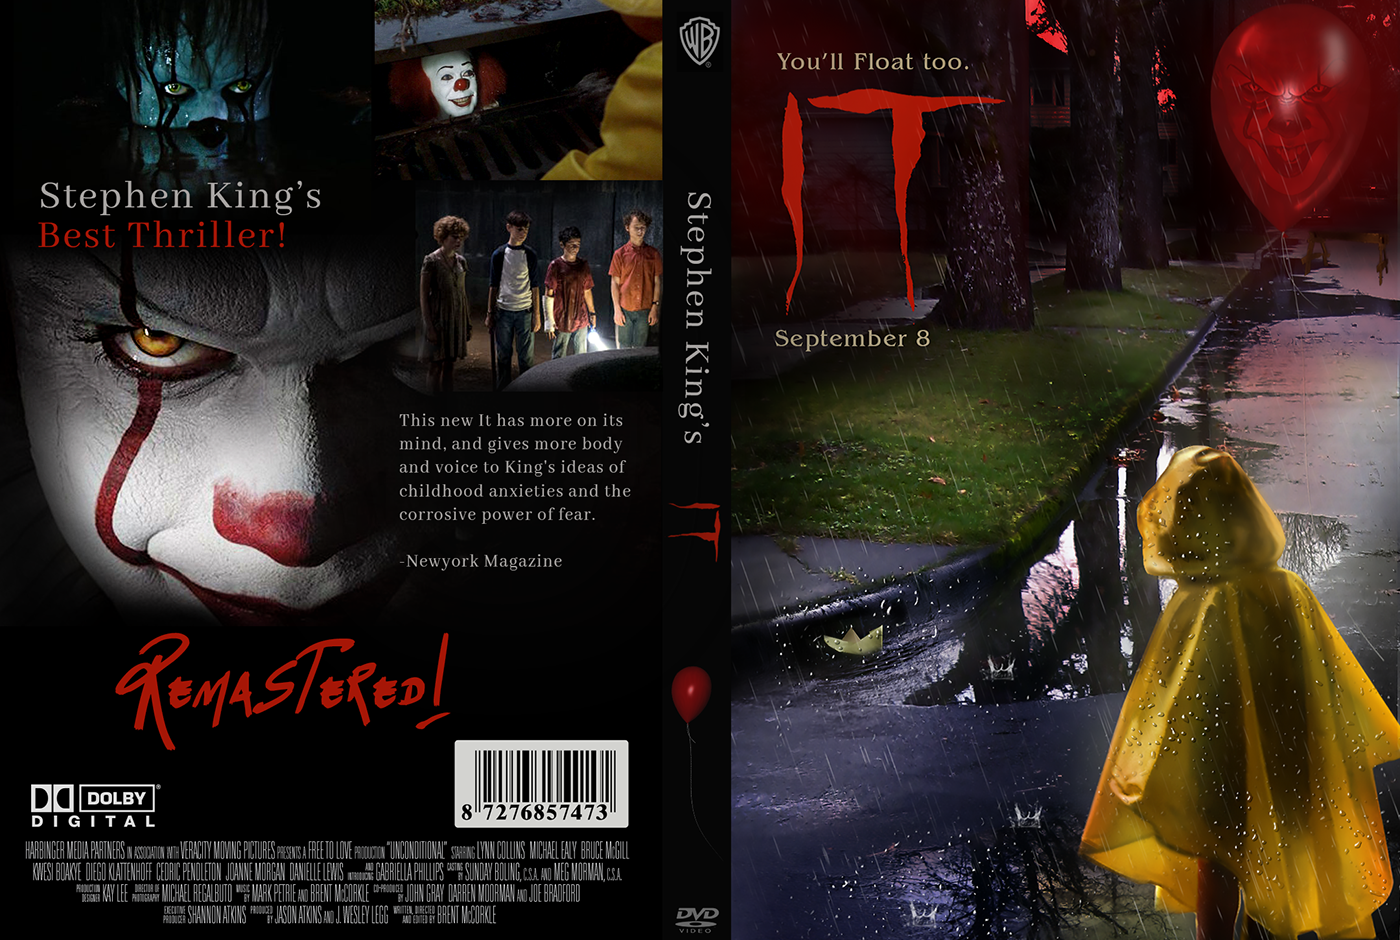 The Movie It Dvd Cover Design On Behance